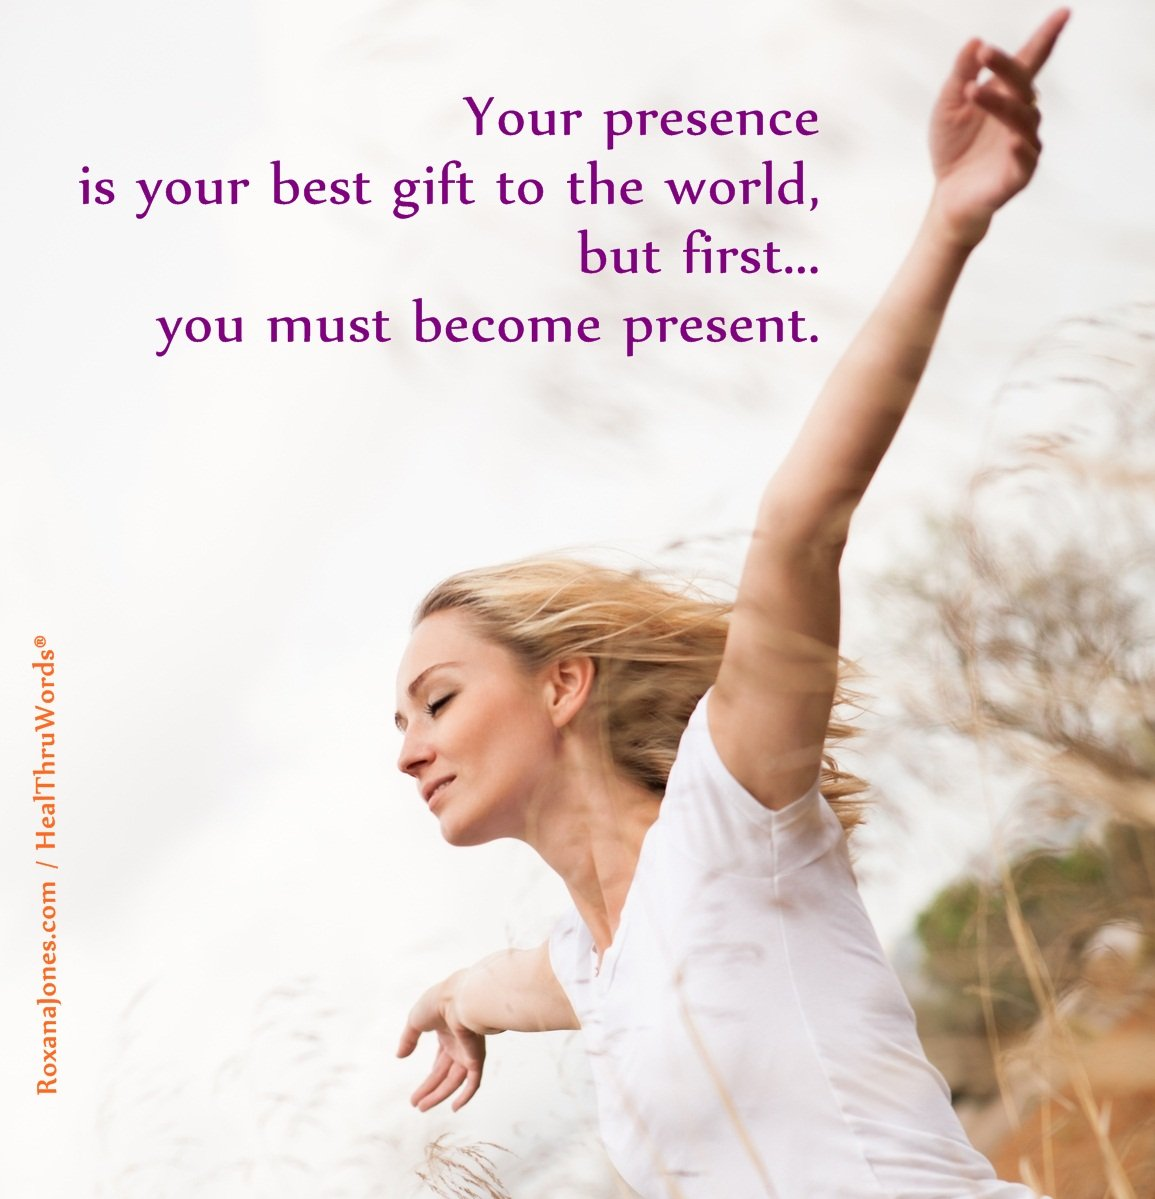 Inspirational Image: You are Present